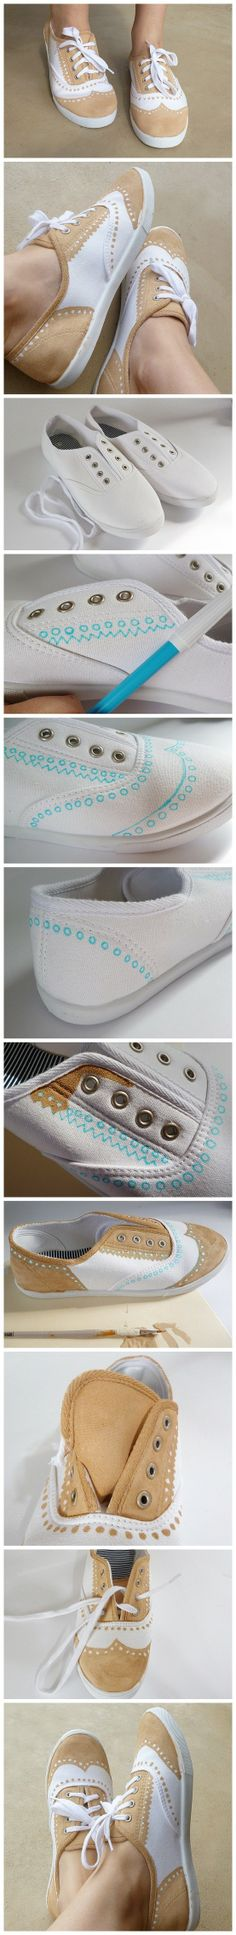 DIY saddle shoes... These are adorable!